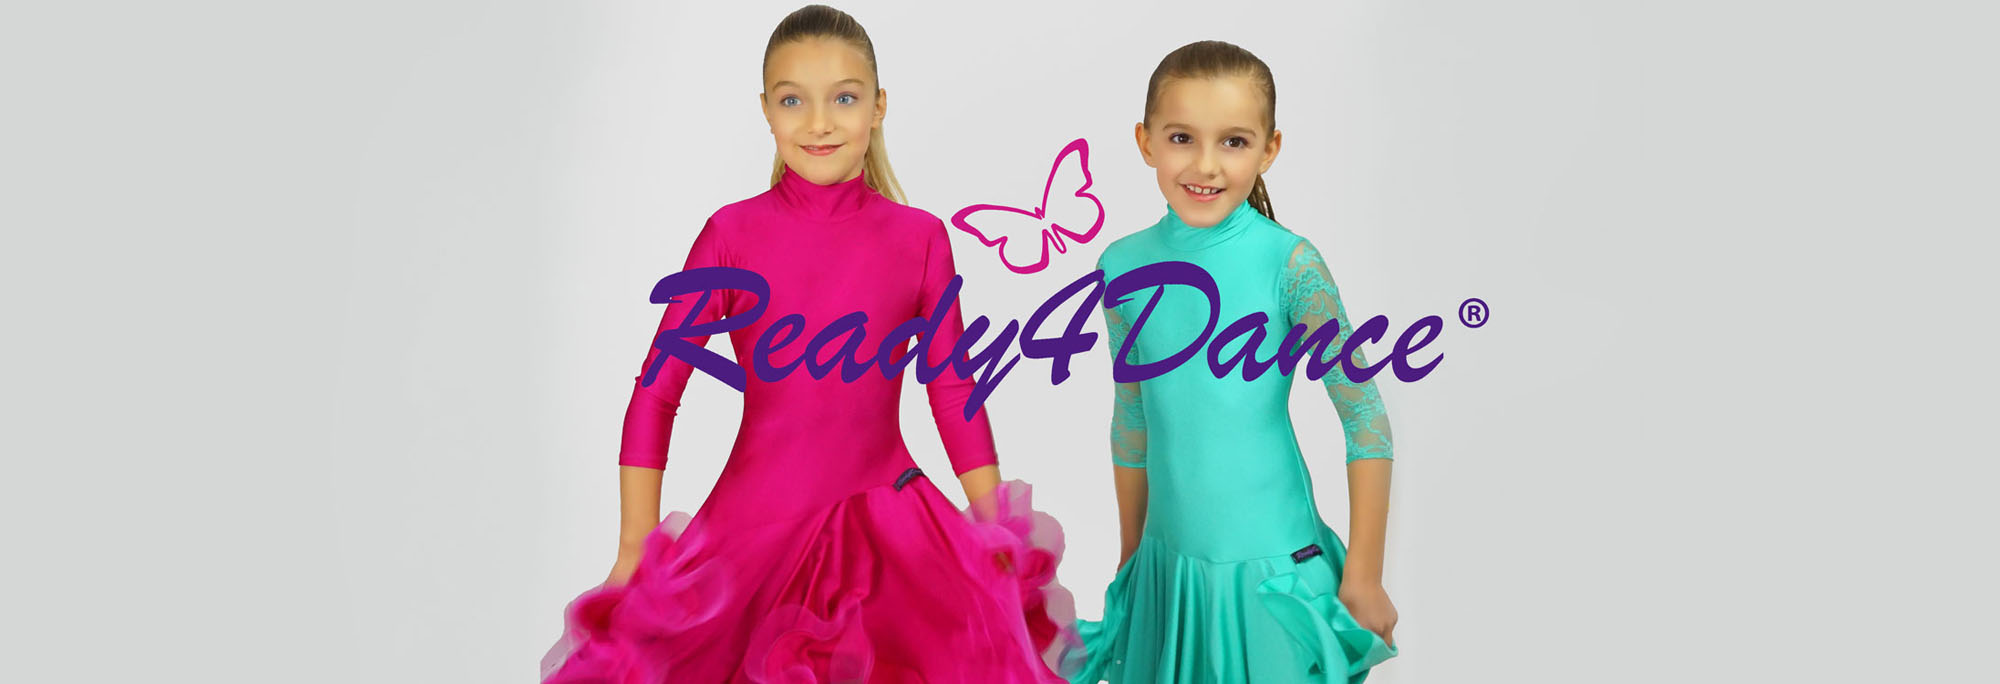 new concept 108c8 1b130 Ready 4 Dance - Abiti da ballo standard, latino e accessori ...